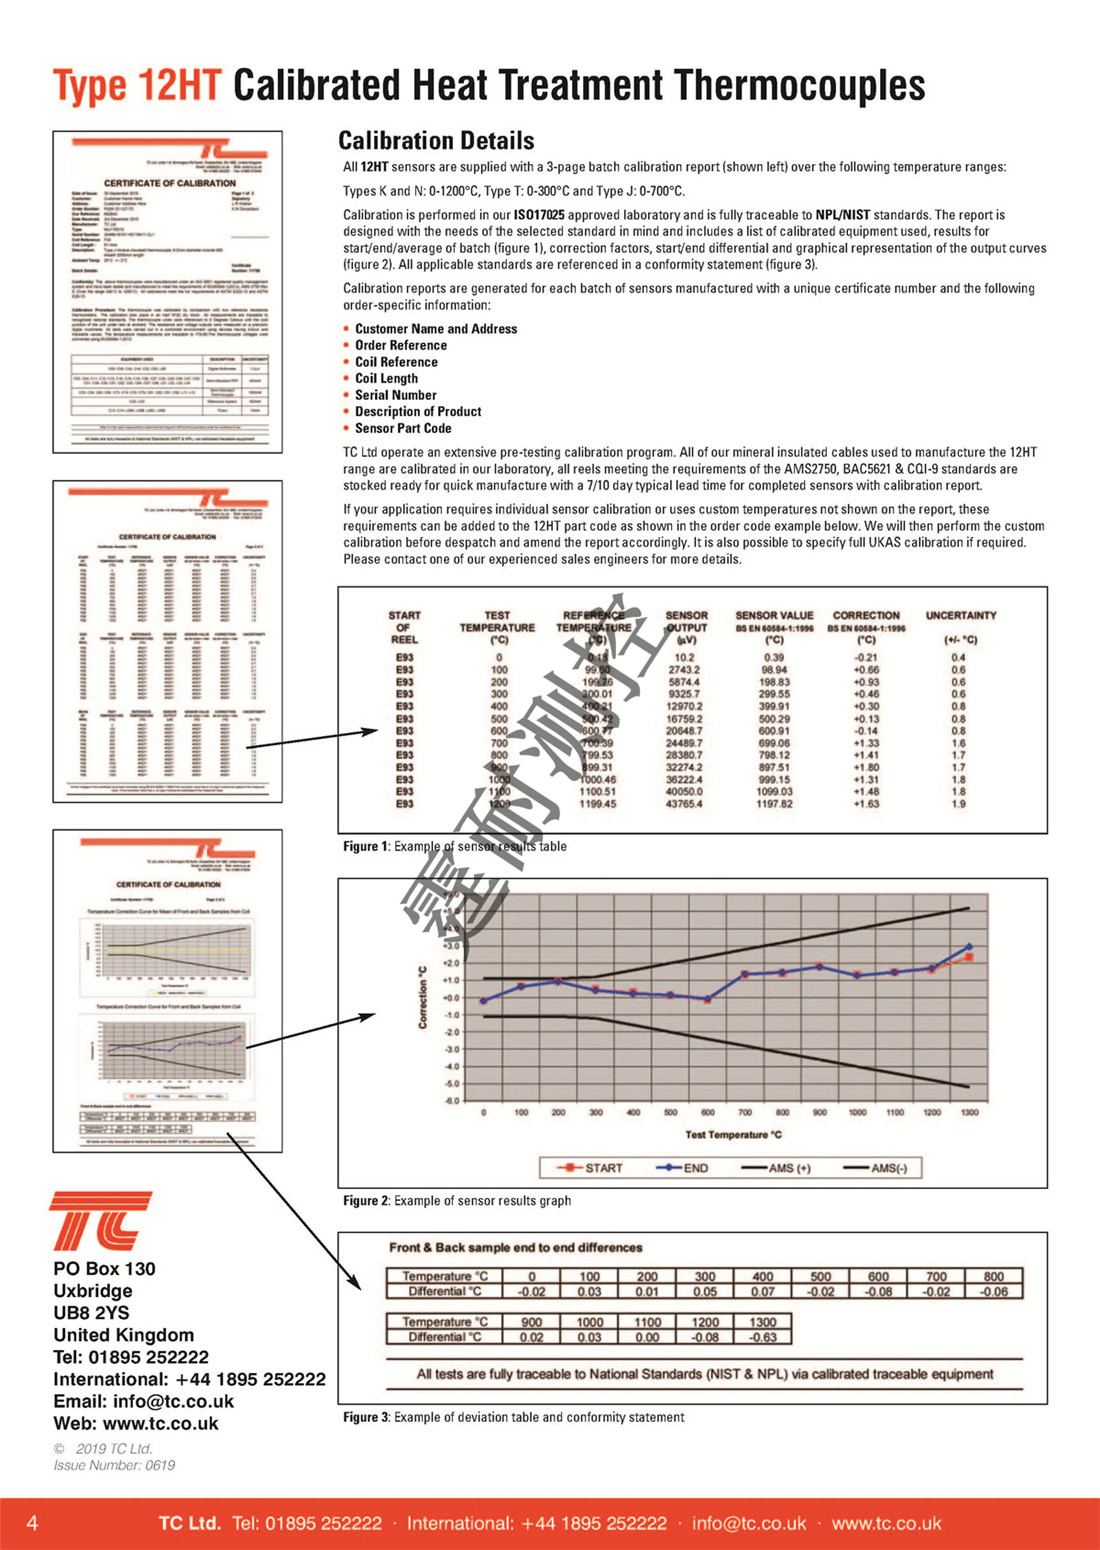 Calibrated-Thermocouples-for-Heat-Treatment-Applications-Type-12HT_页面_4.jpg